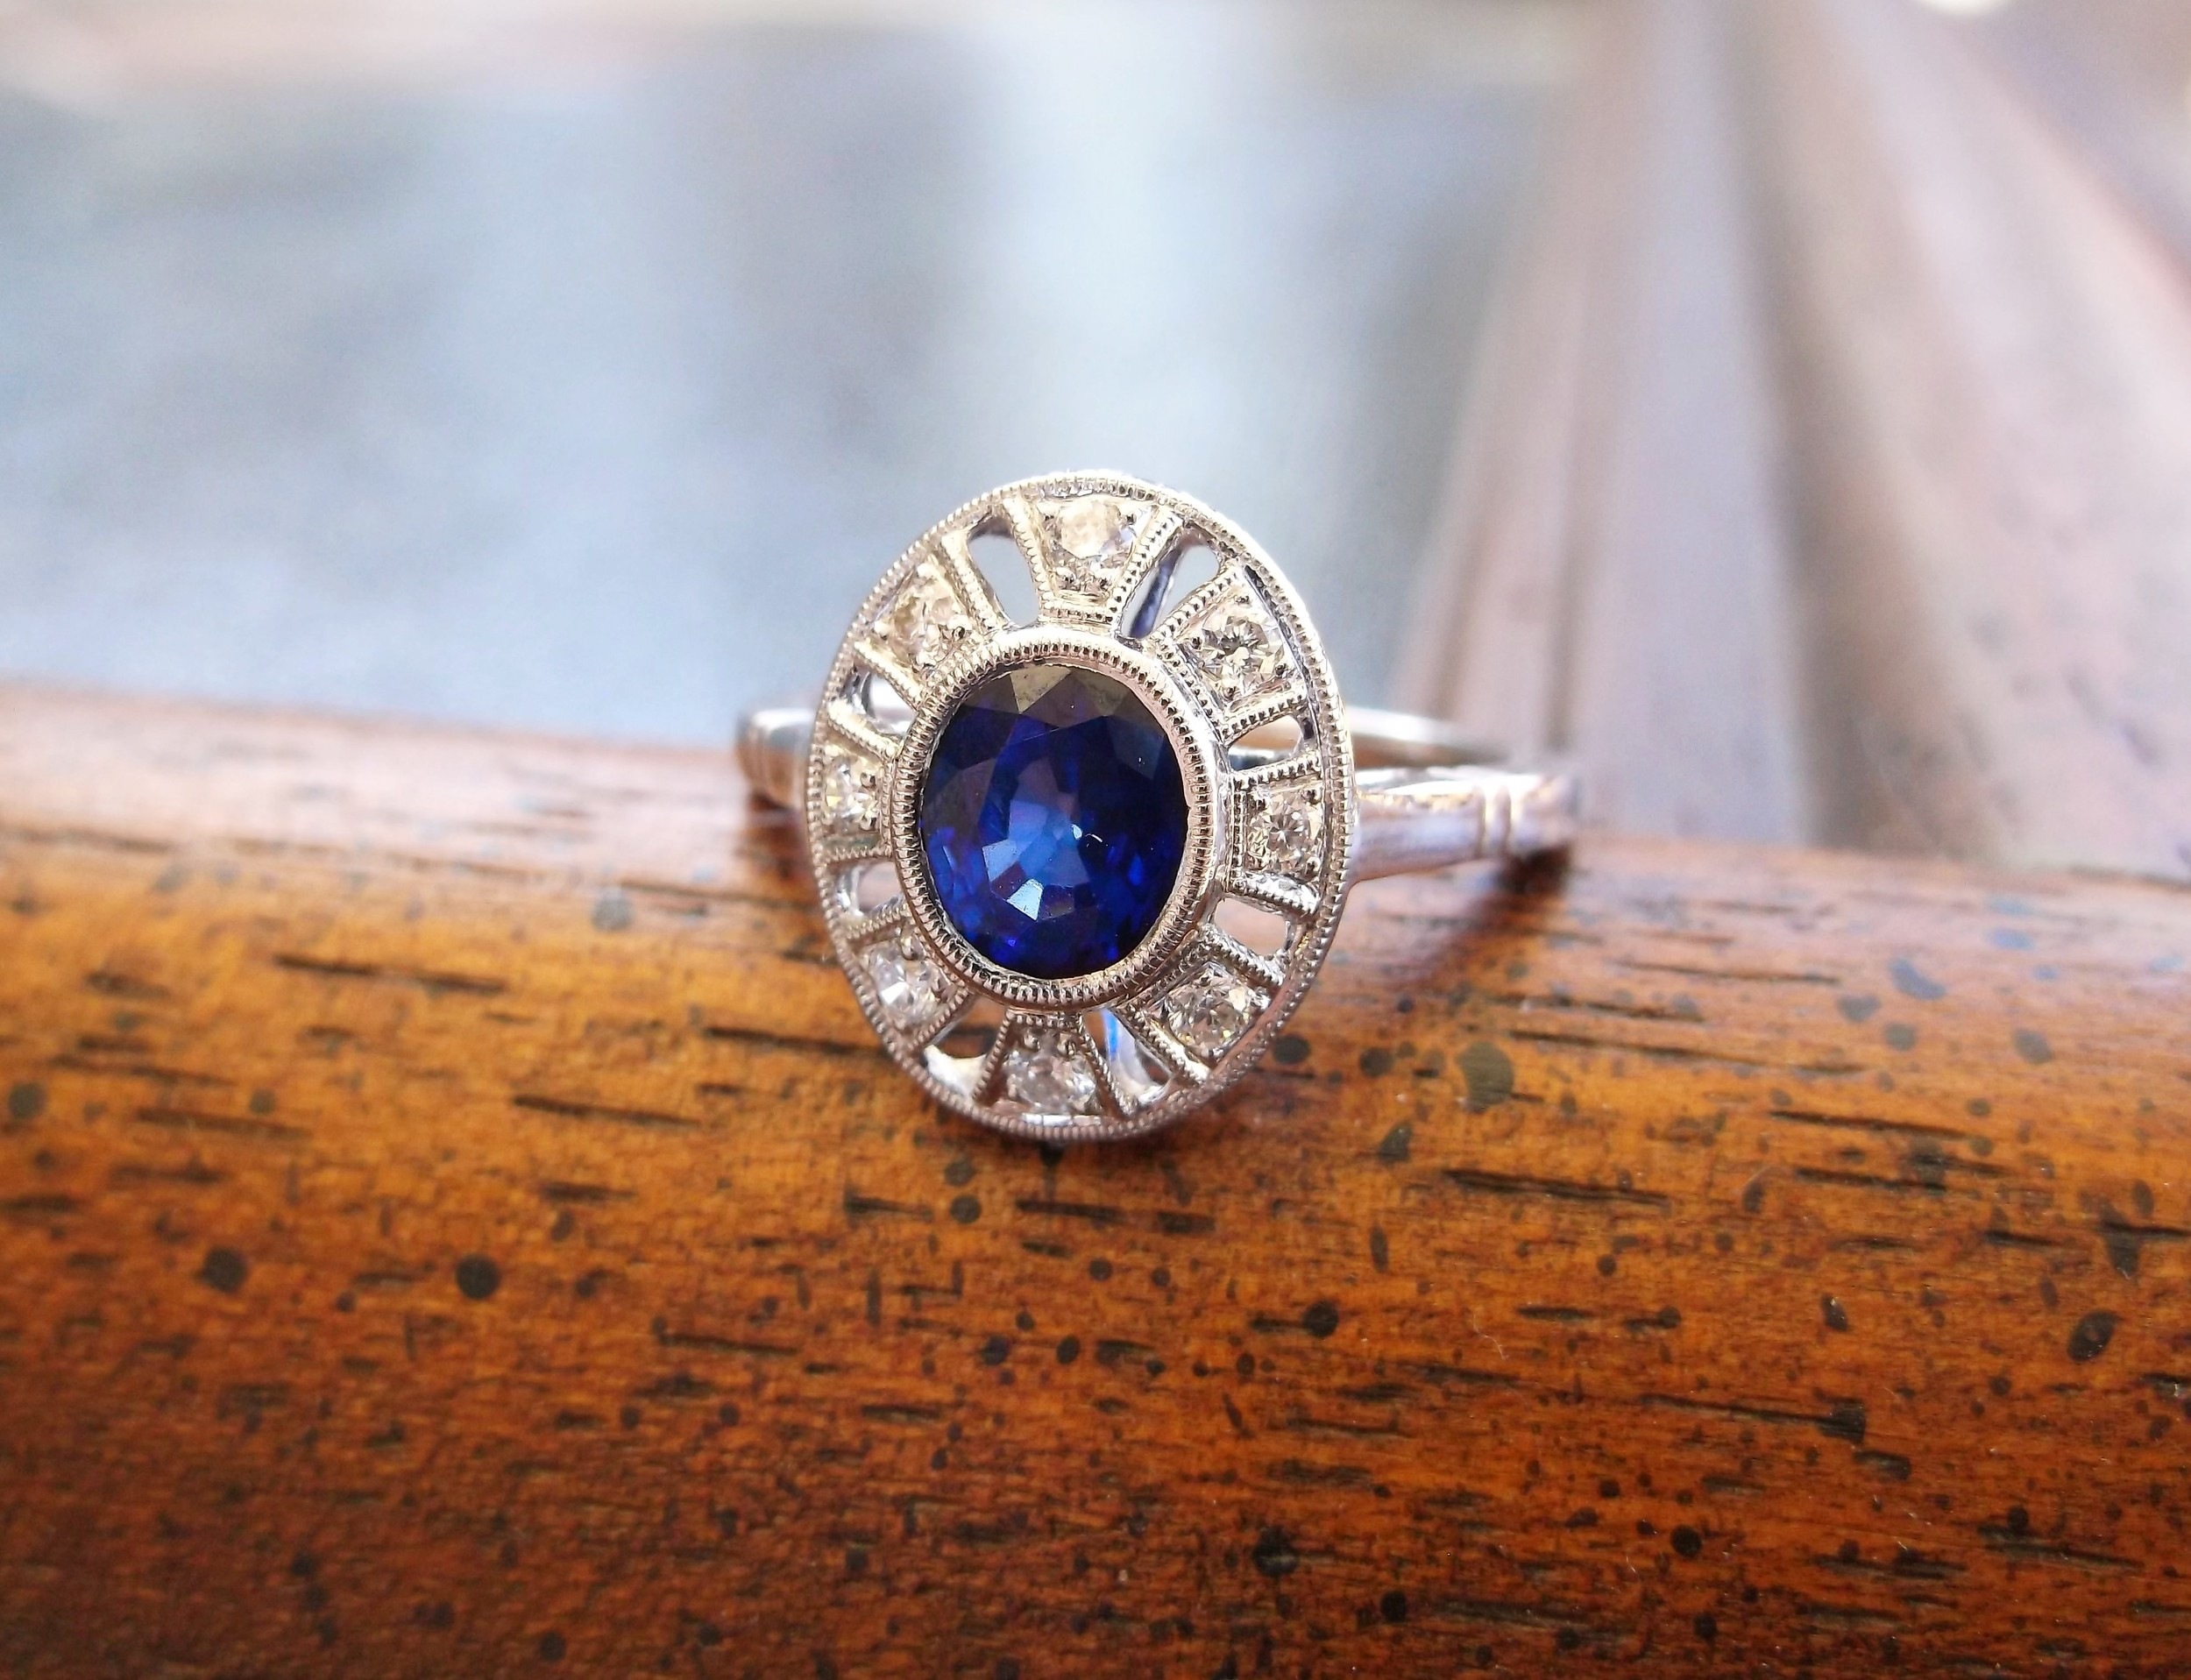 SOLD - Gorgeous 1.18 carat oval cut sapphire in a beautiful diamond and white gold mounting.